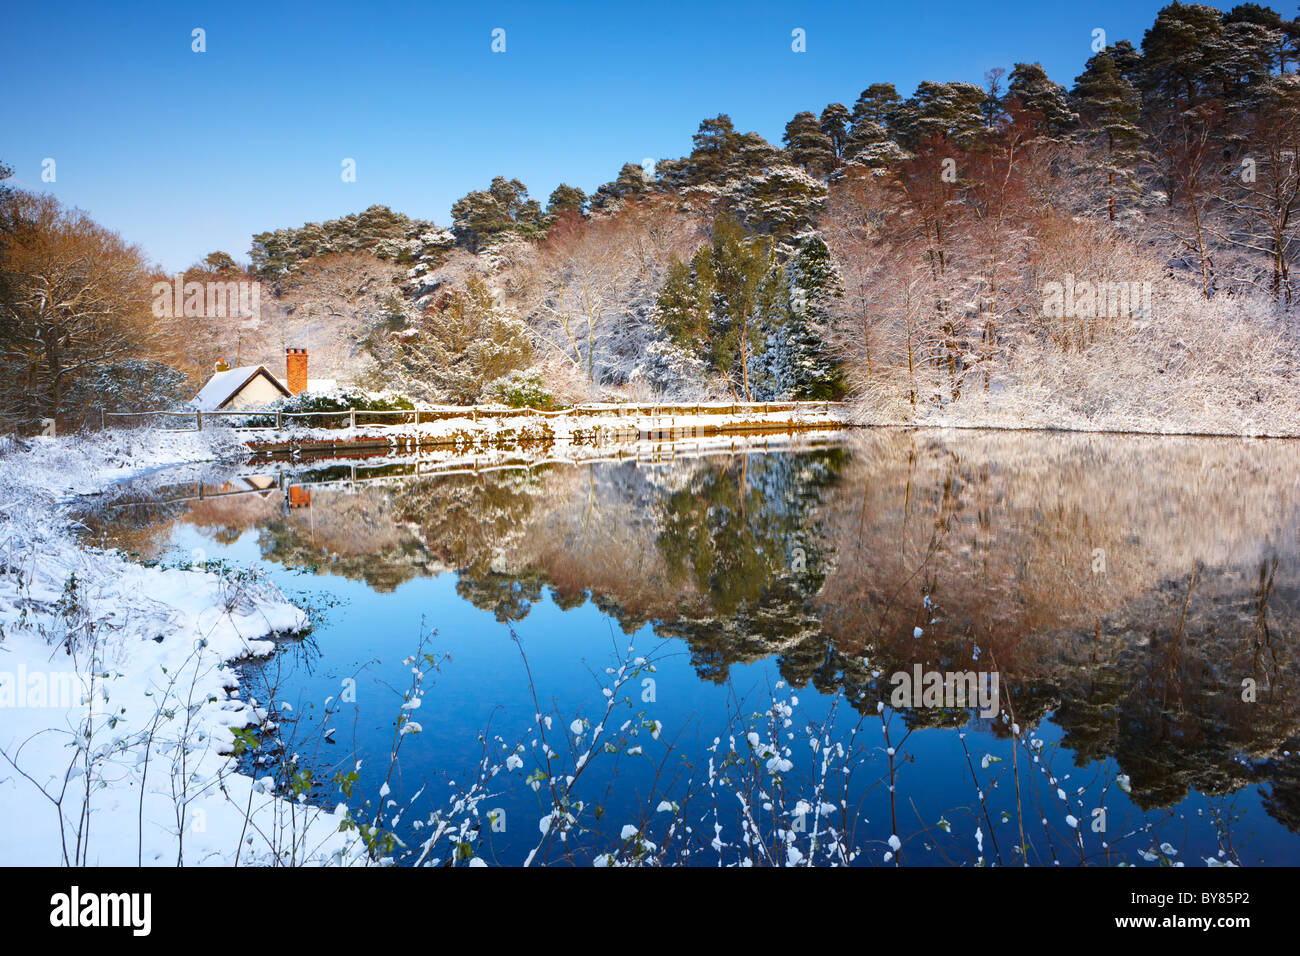 A covering of snow reflected in the Mill pond at Friday Street, Surrey - Stock Image